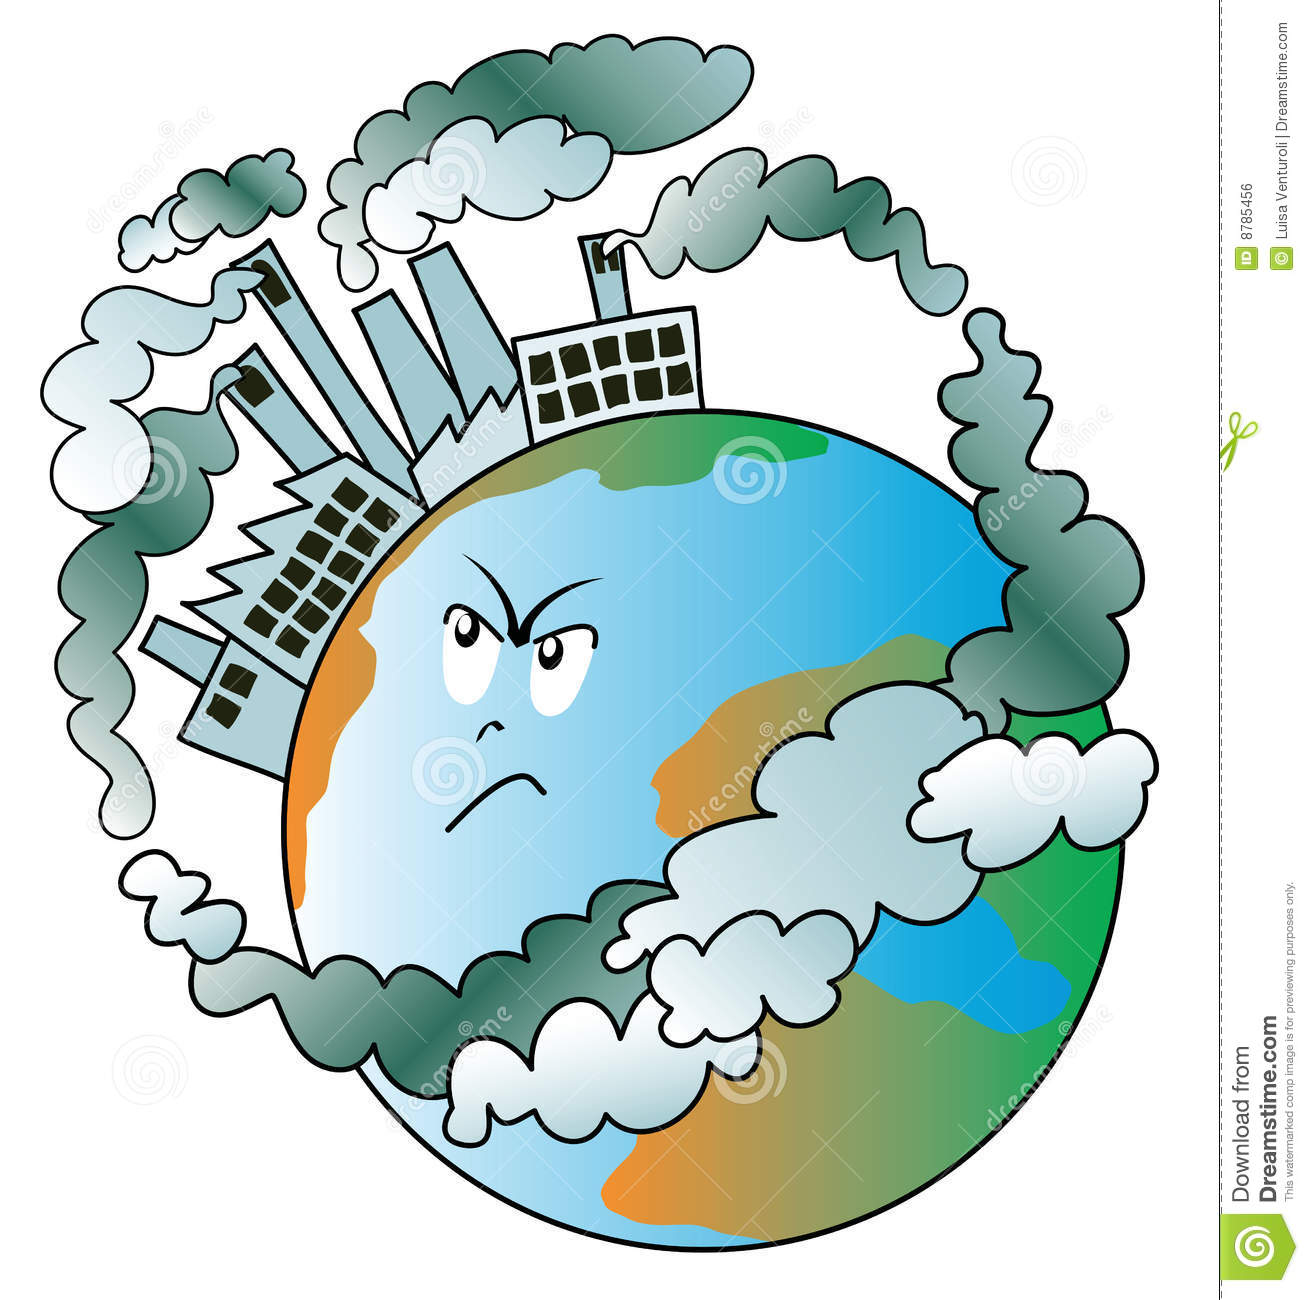 Pollution clipart city pollution Air Pollution Clipart Savoronmorehead Pollution